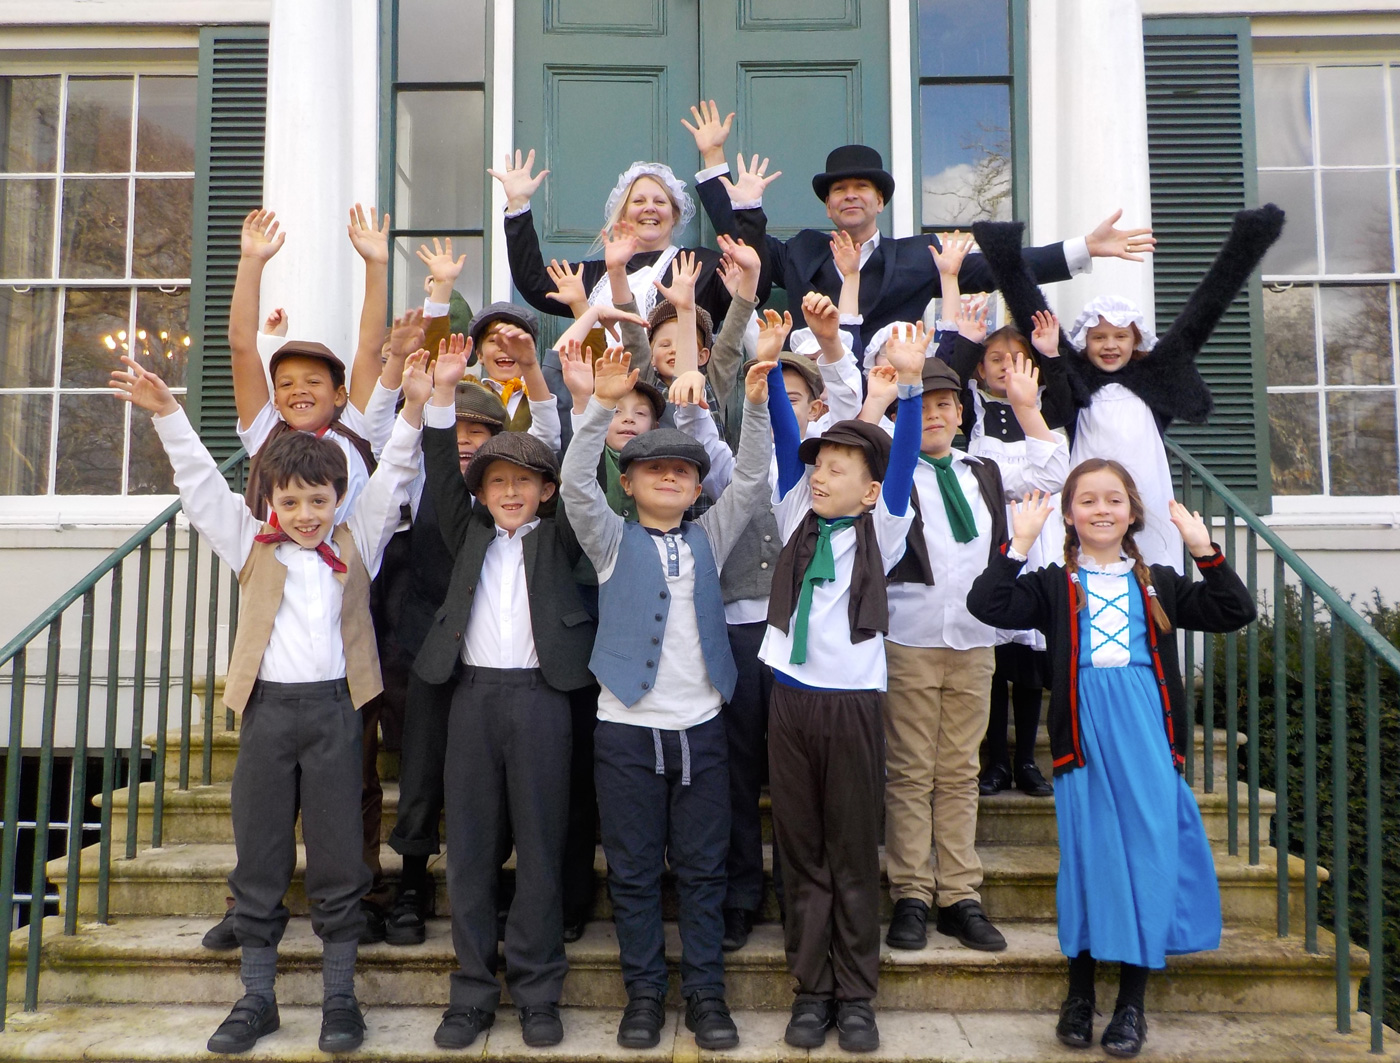 Year 3 visit Preston Manor for their Victorians topic